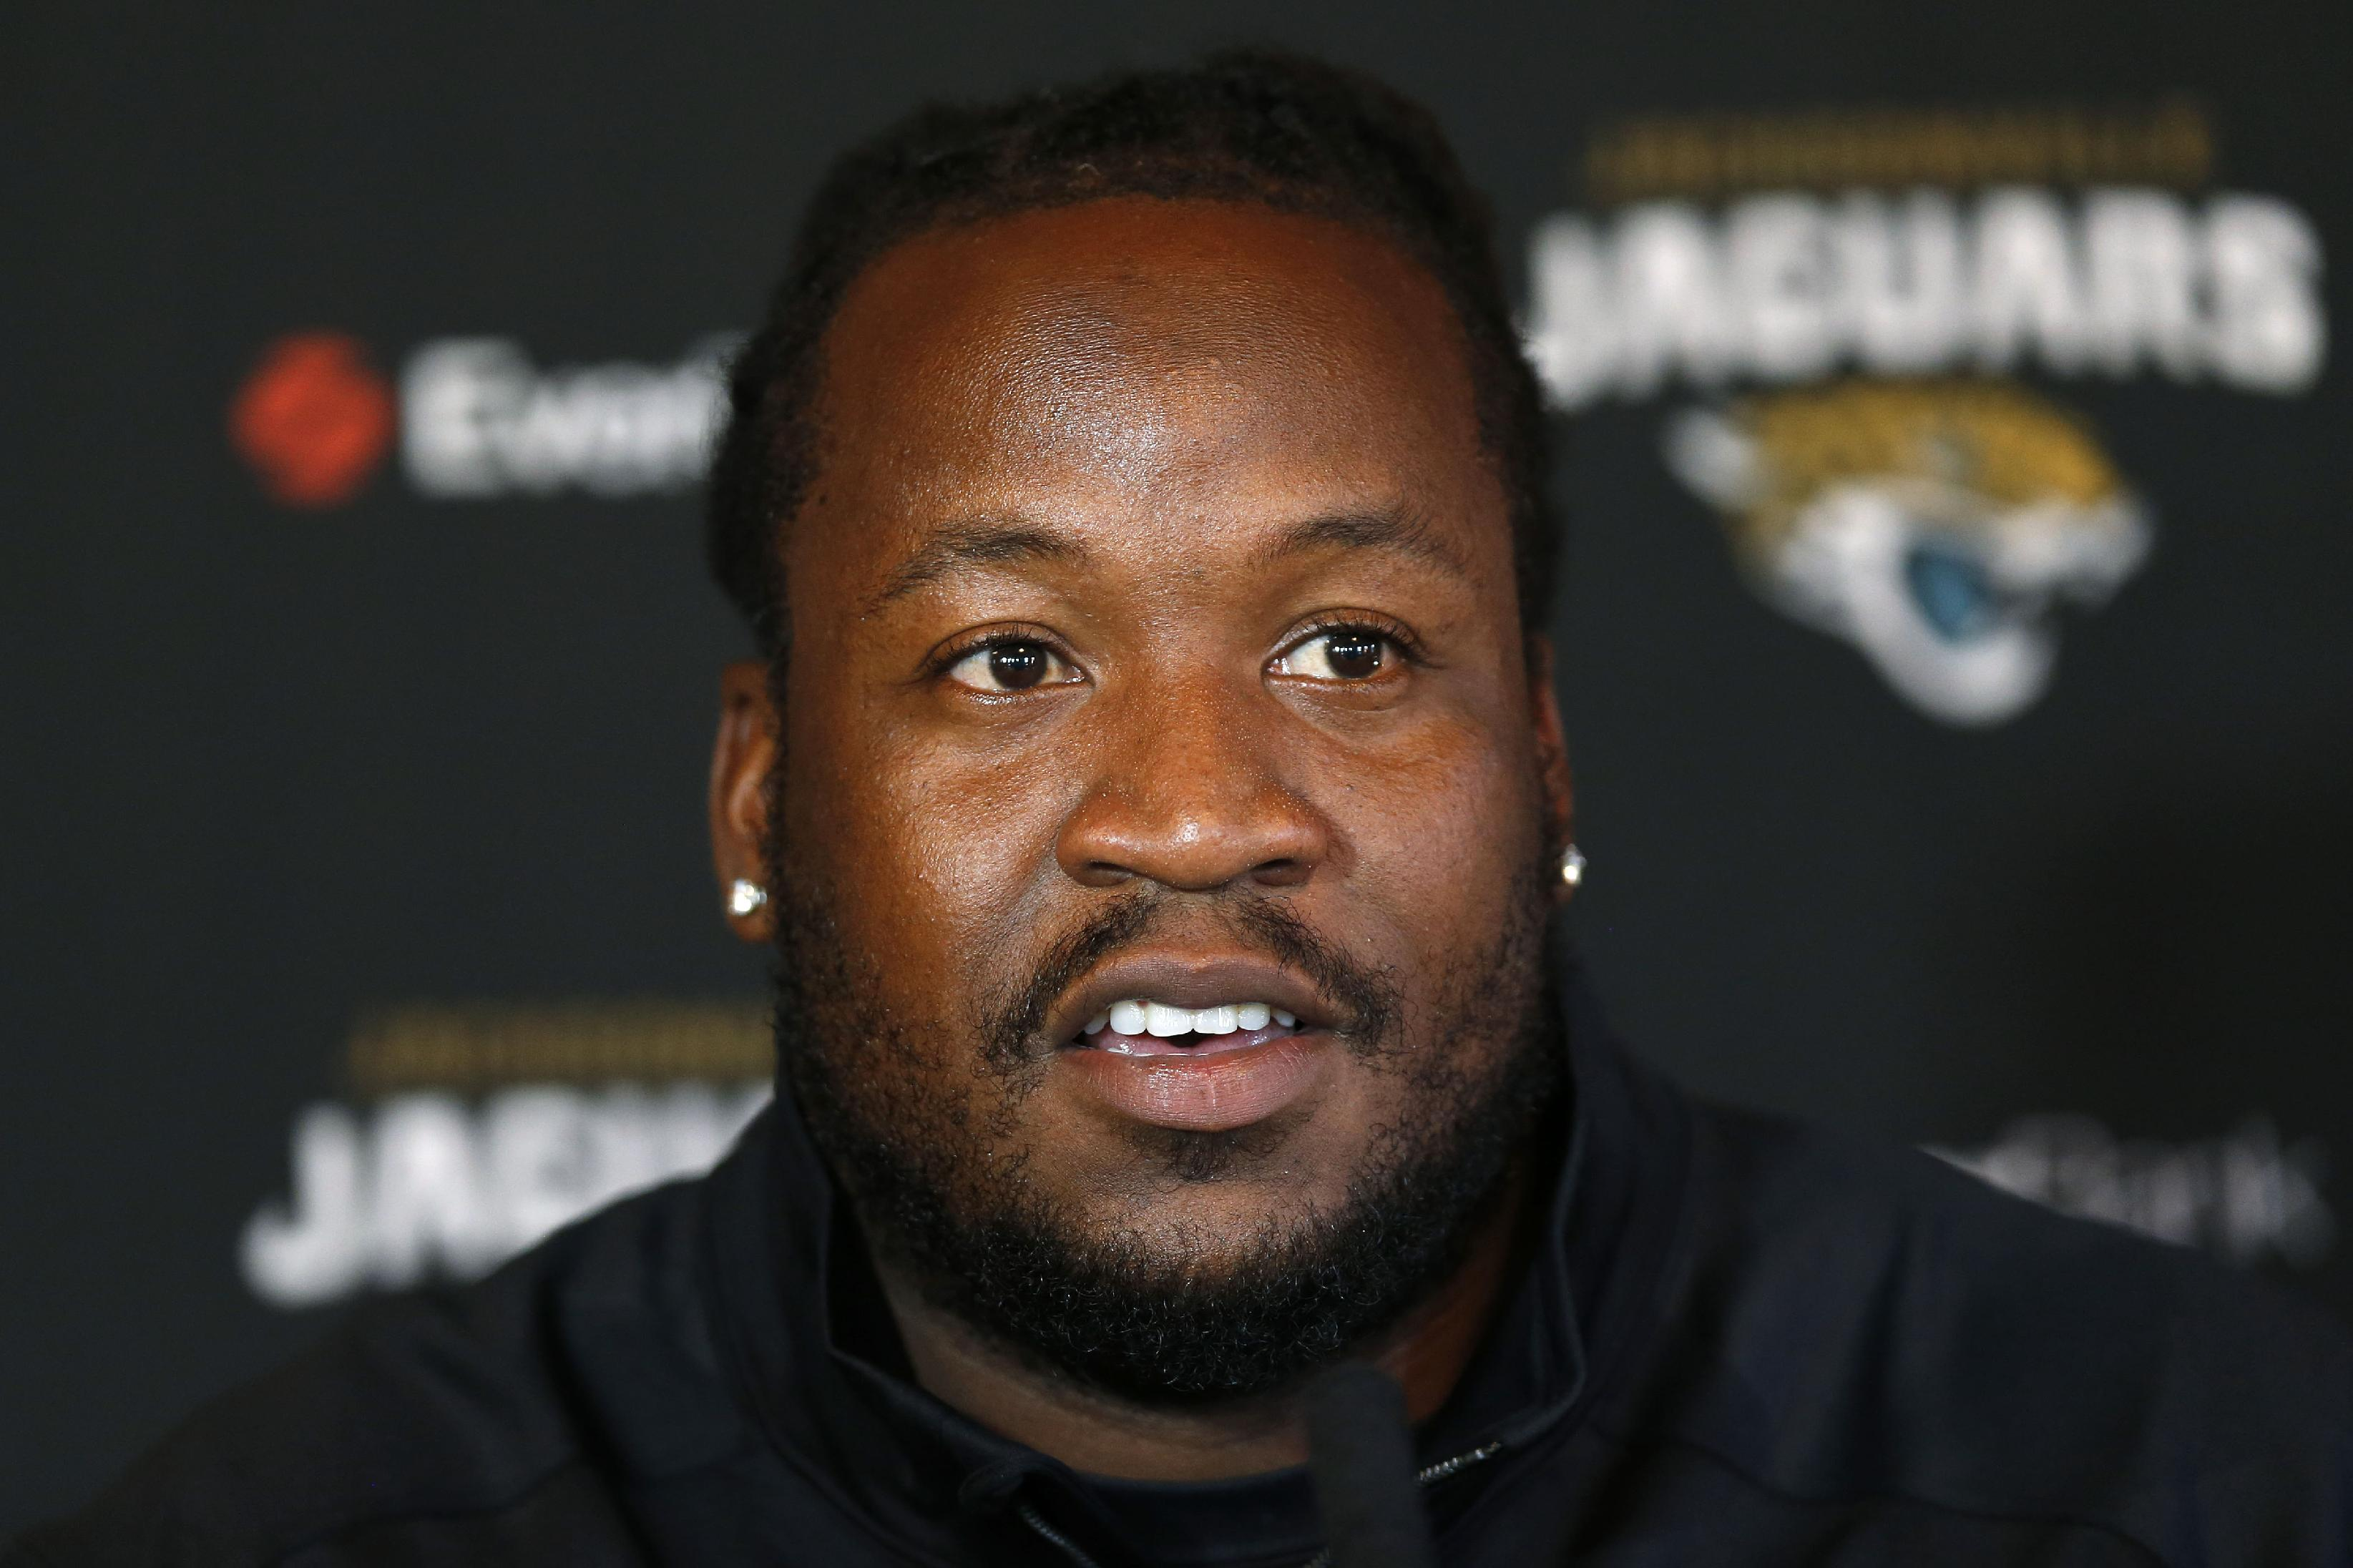 Jacksonville Jaguars' guard Uche Nwaneri speaks to the media during a press conference at the Pennyhill Park Hotel and Spa in Bagshot, England, Wednesday, Oct. 23, 2013. Jaguars play San Francisco 49ers on Sunday in a NFL football game at Wembley Stadium  in London